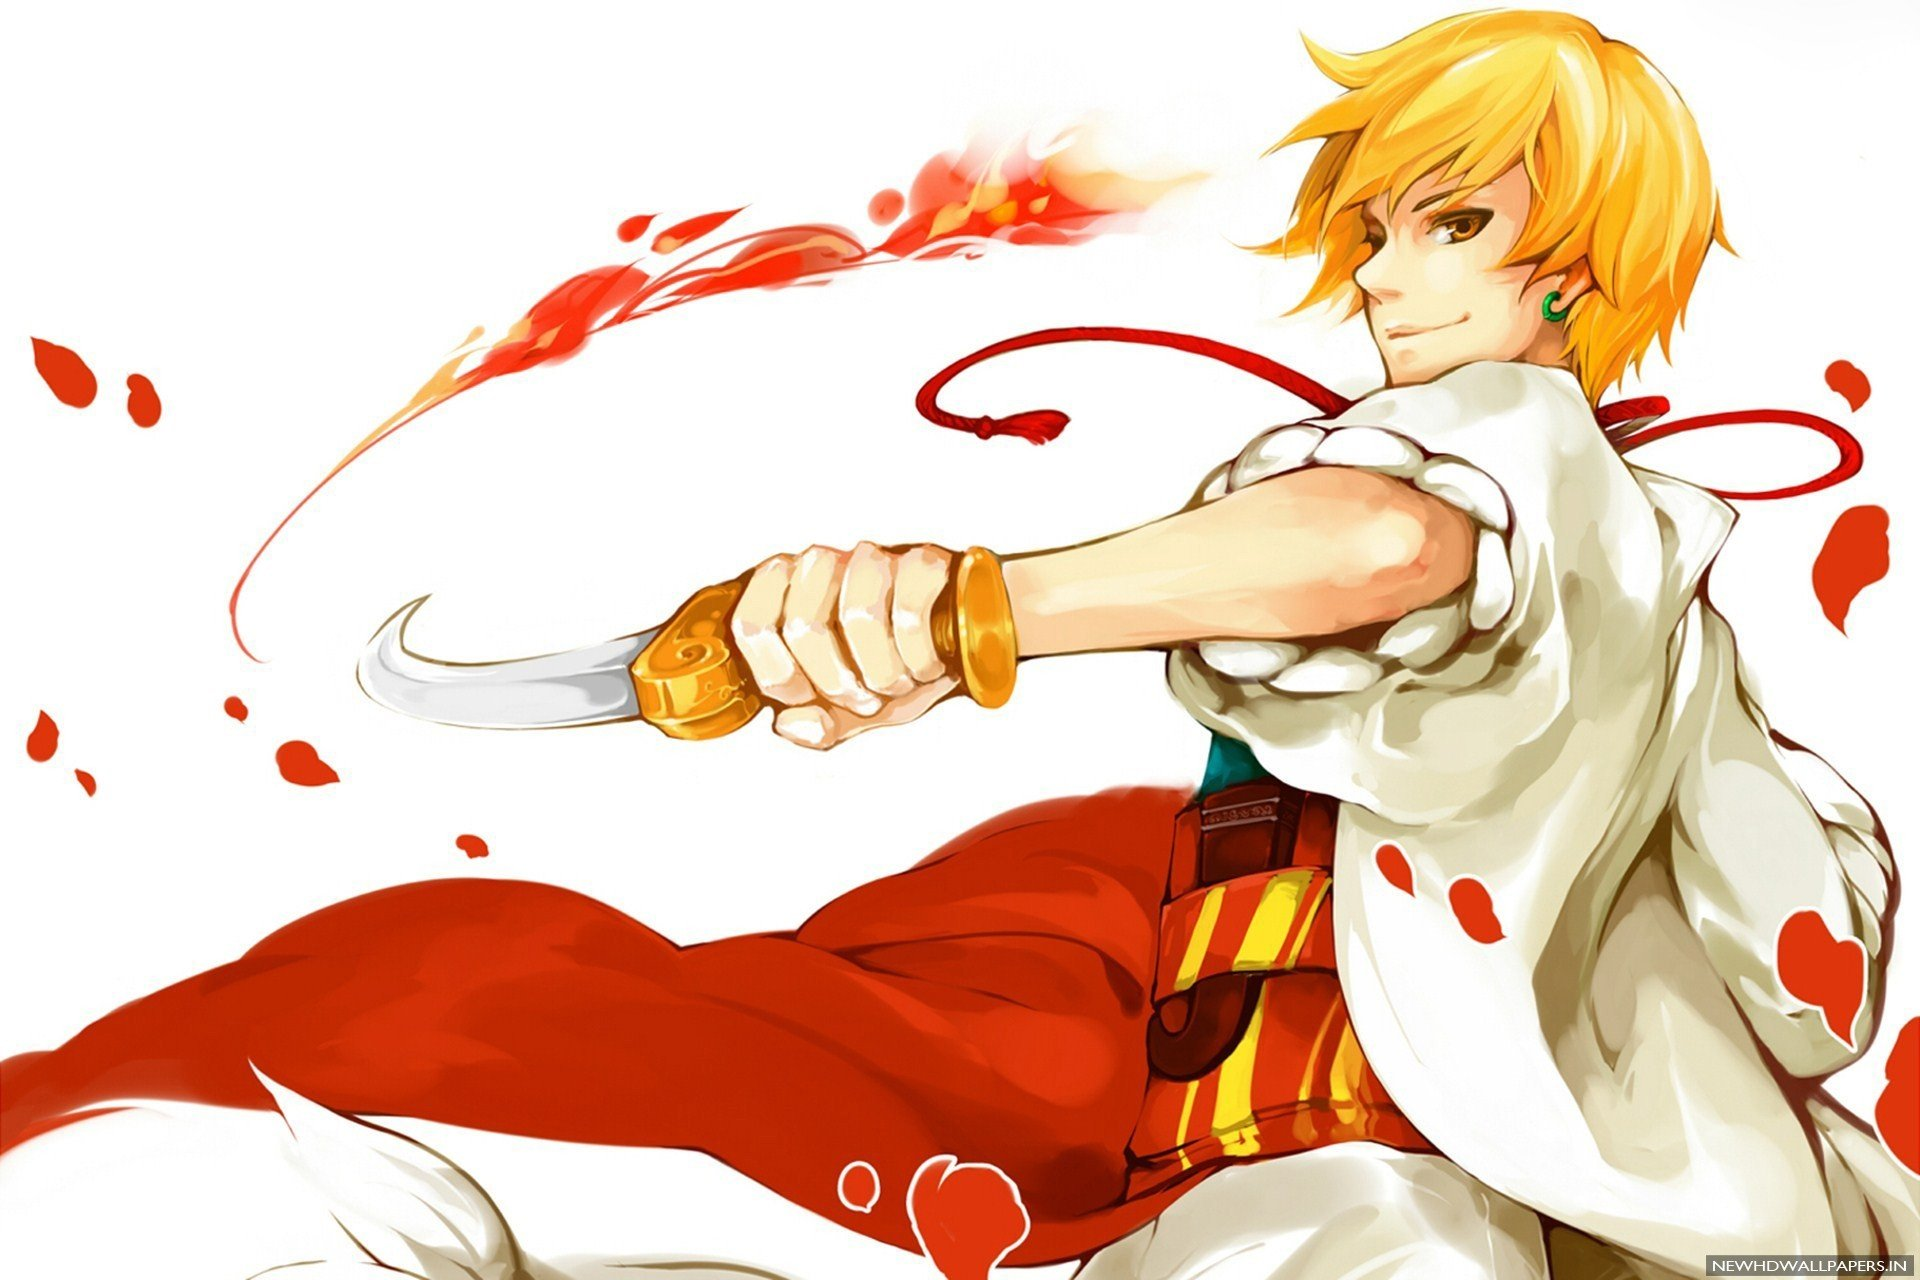 Anime boy blond hair short wallpaper 1920x1280 851065 wallpaperup